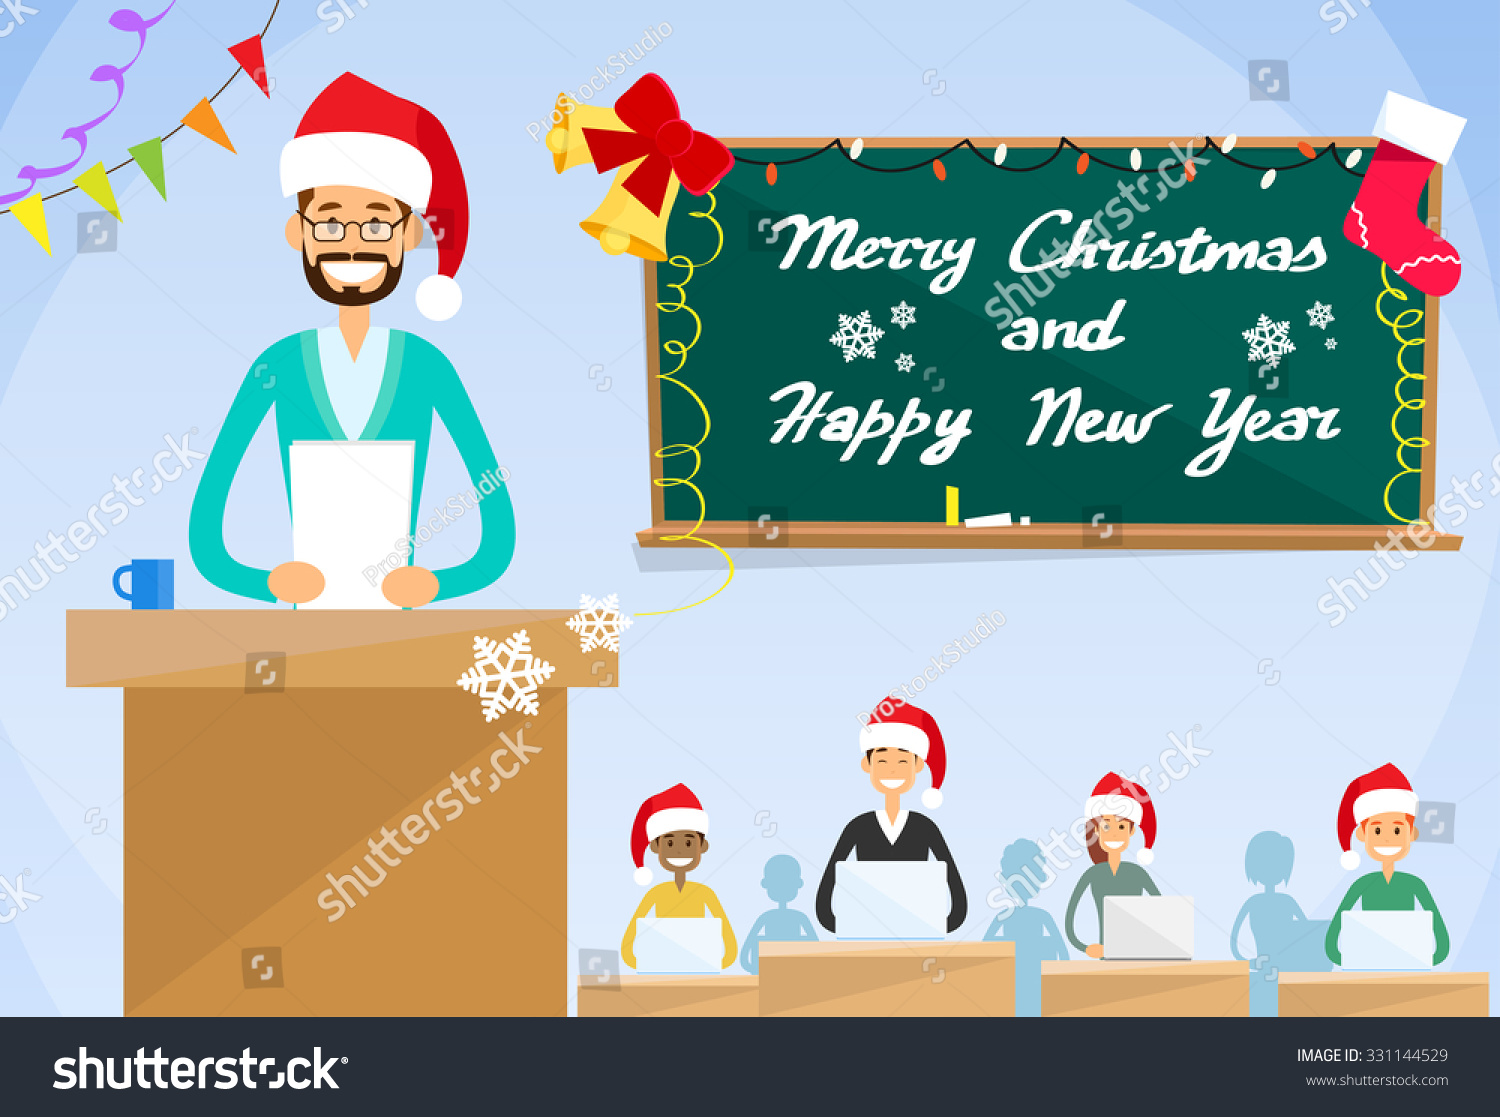 university professor lecture new year christmas holiday hat teacher college class group of students people